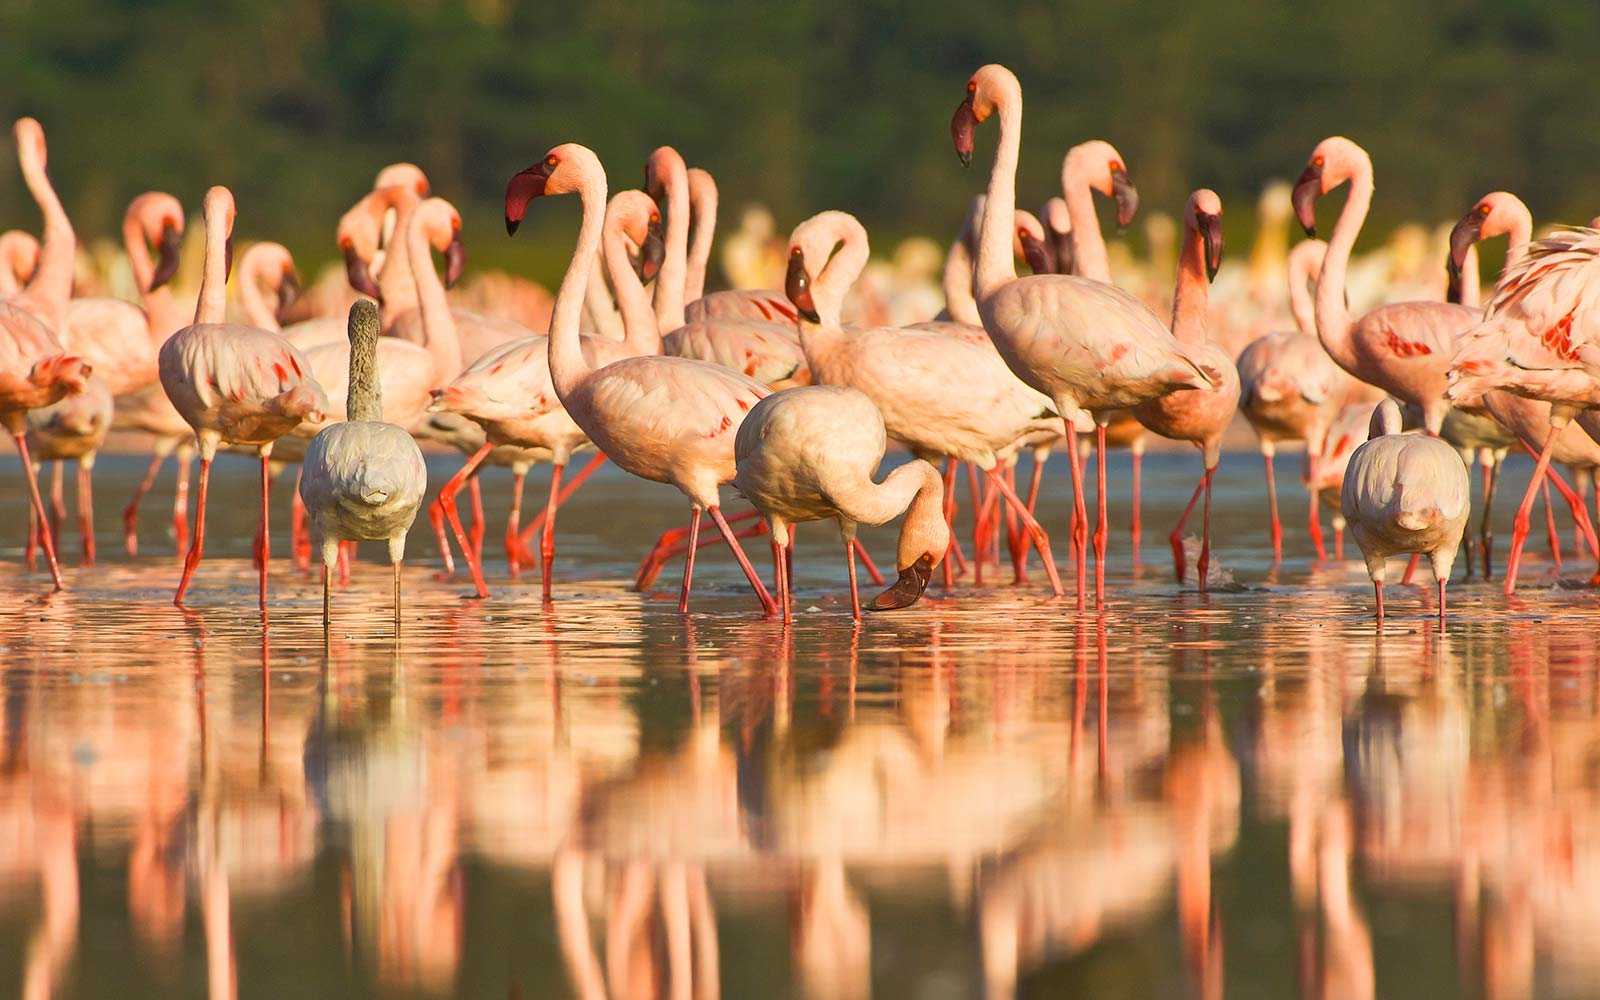 These Flamingos Made a Most Orderly Evacuation Ahead of Hurricane Irma